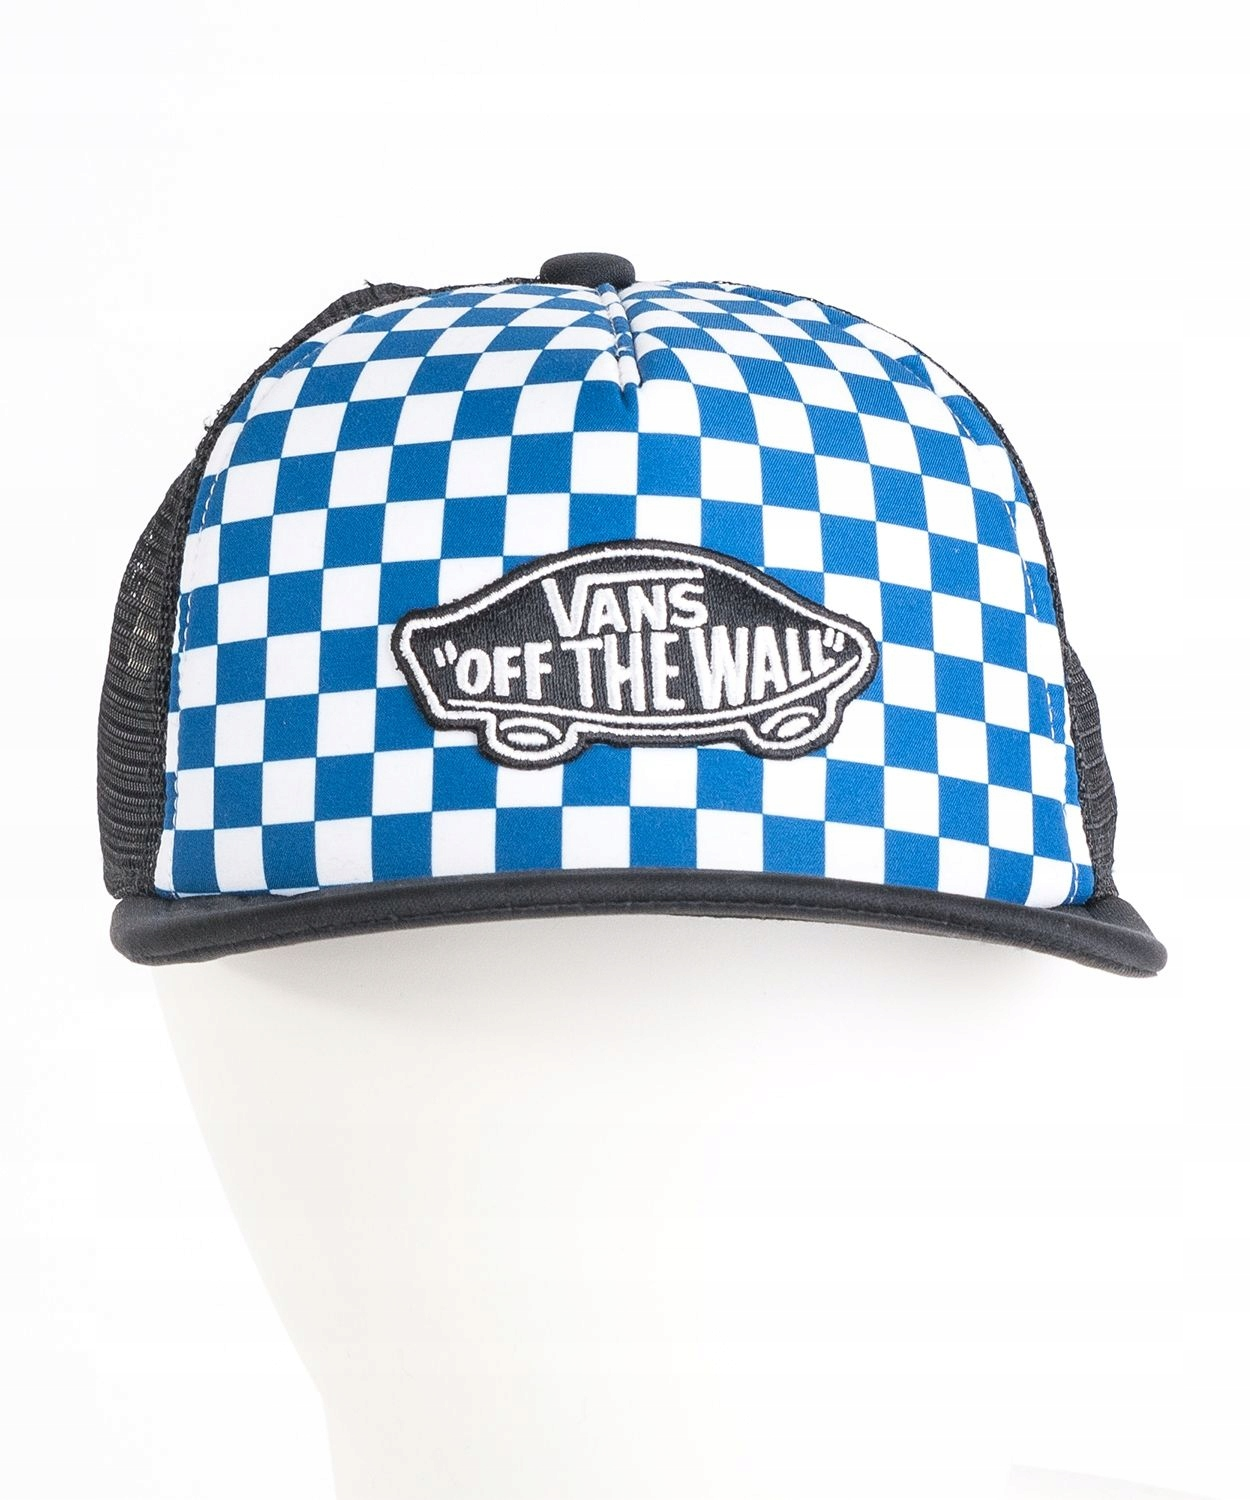 Vans CLASSIC PATCH TRUCKER PLUS V00XNTRU6 Check Bl - 7656966048 ... 32a5f7038ad